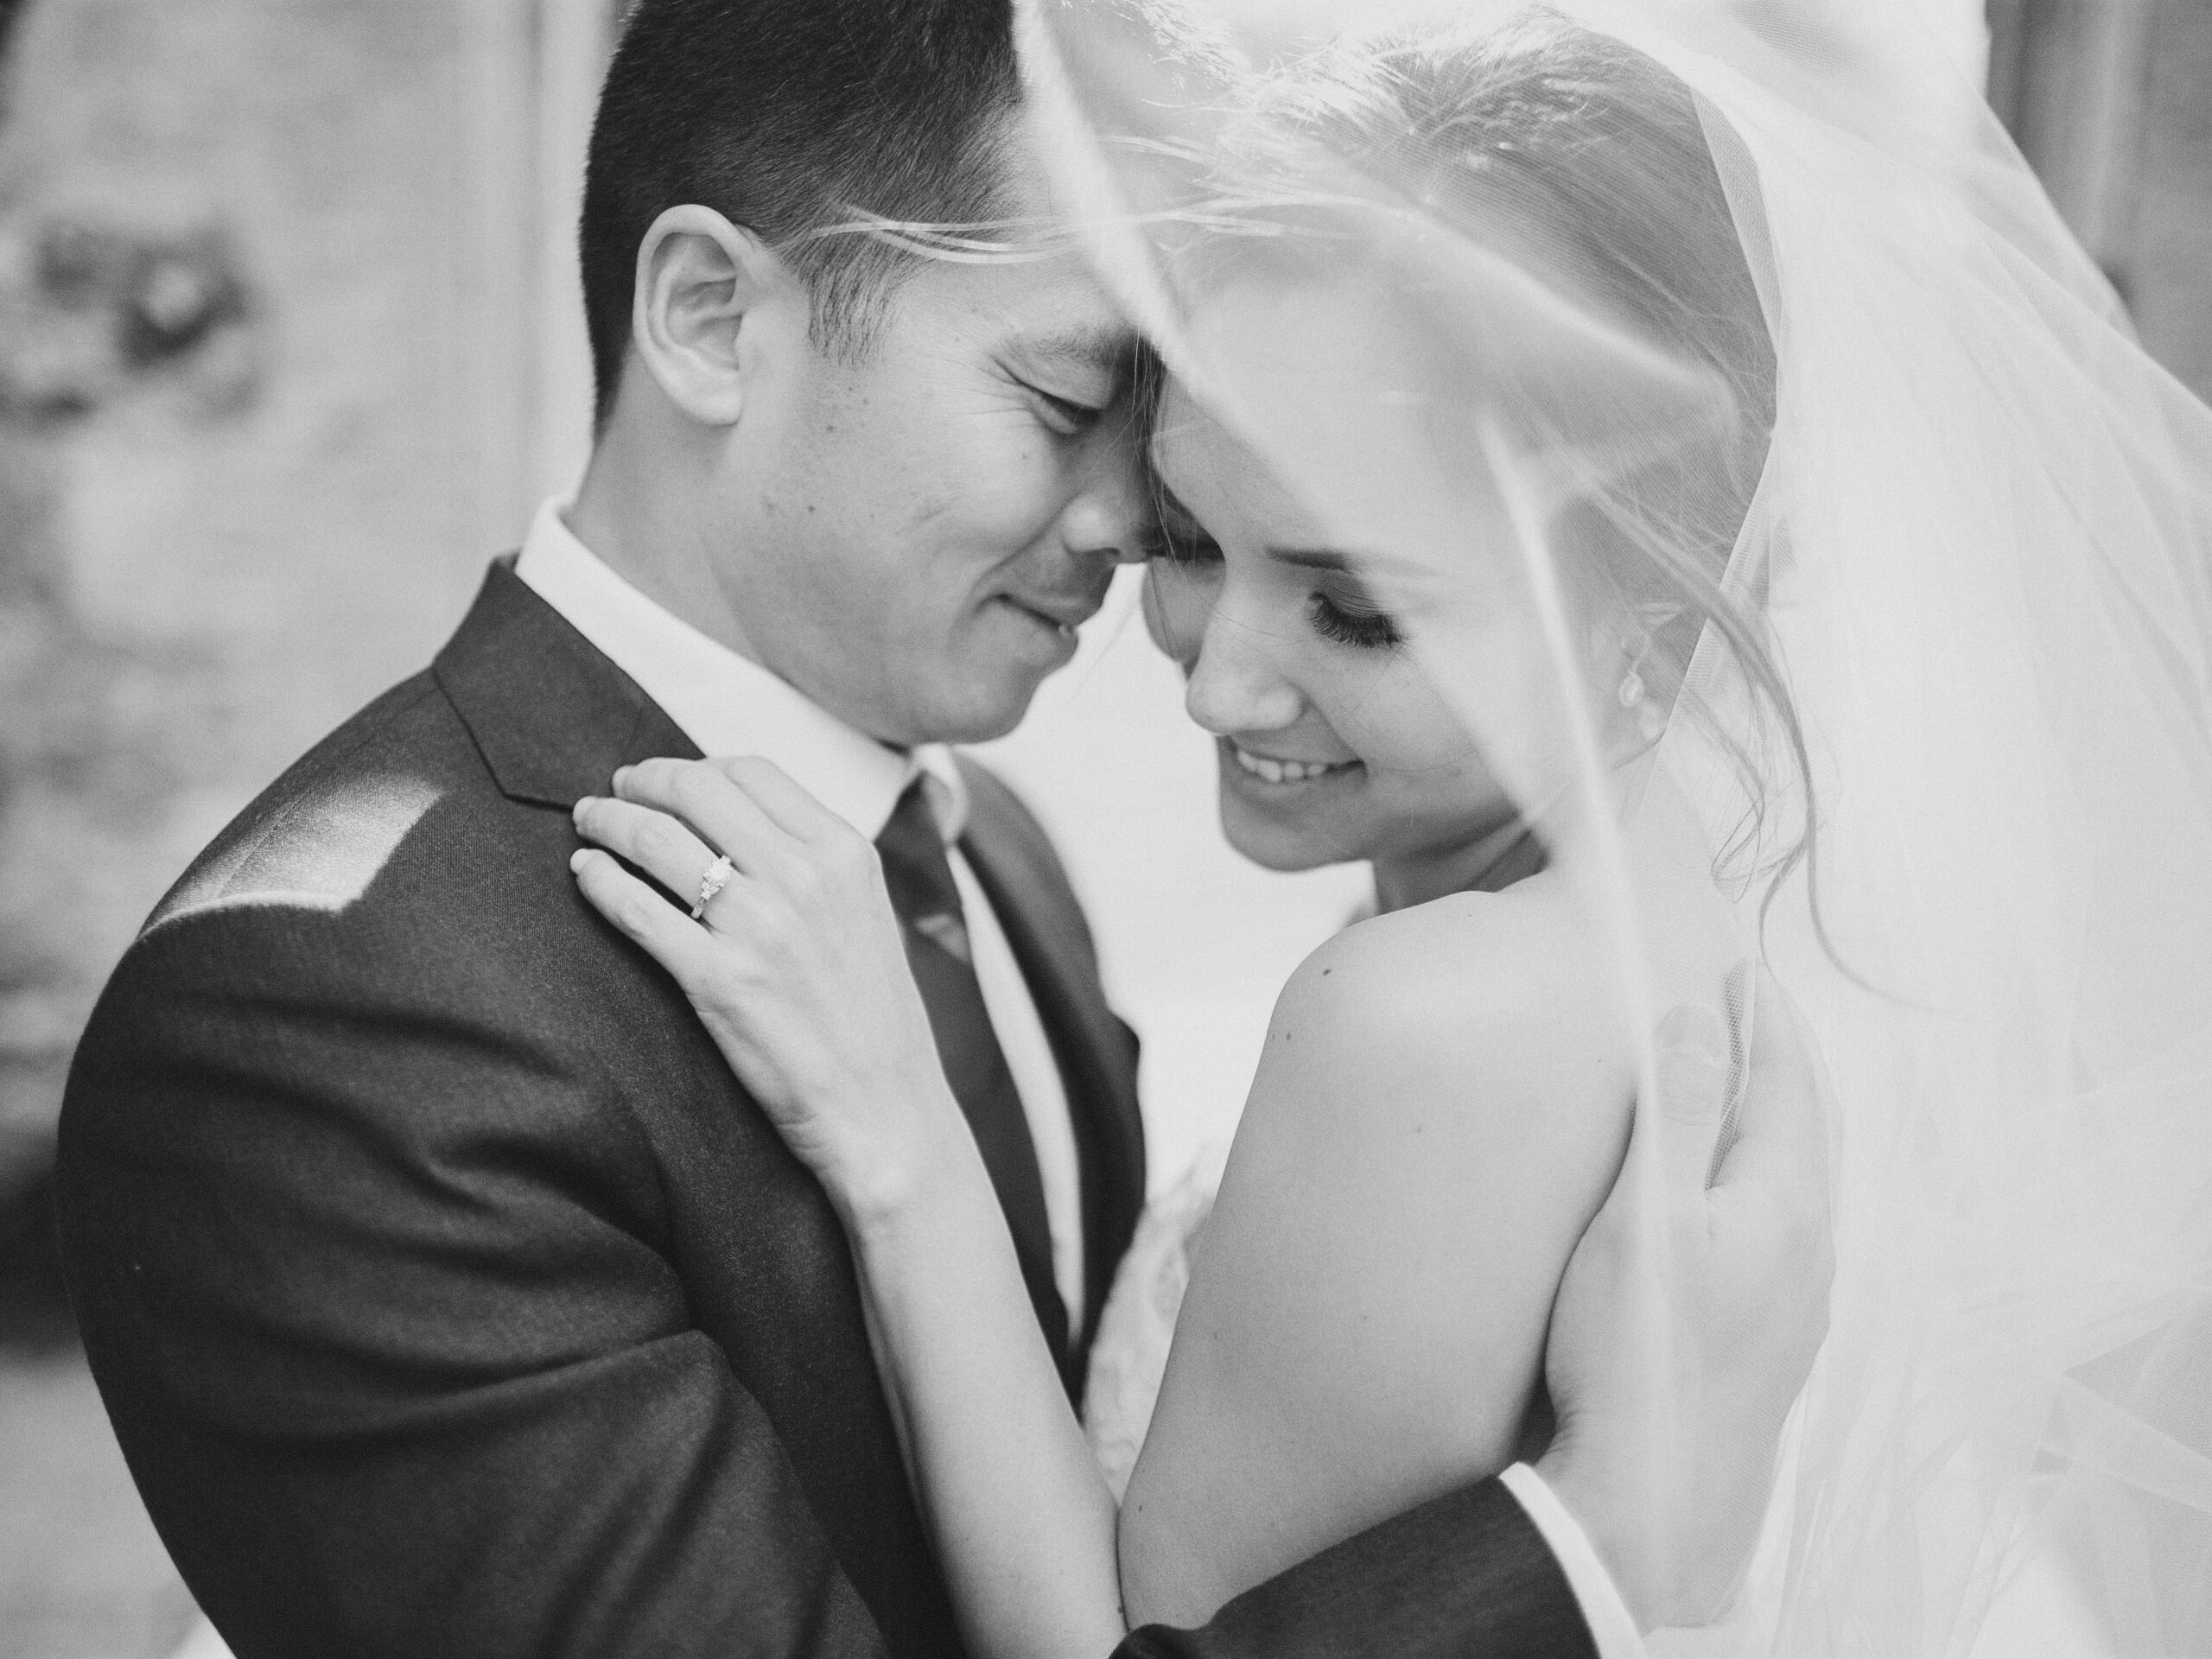 Wedding Photography Styles: Wedding Photography Styles You Need To Know